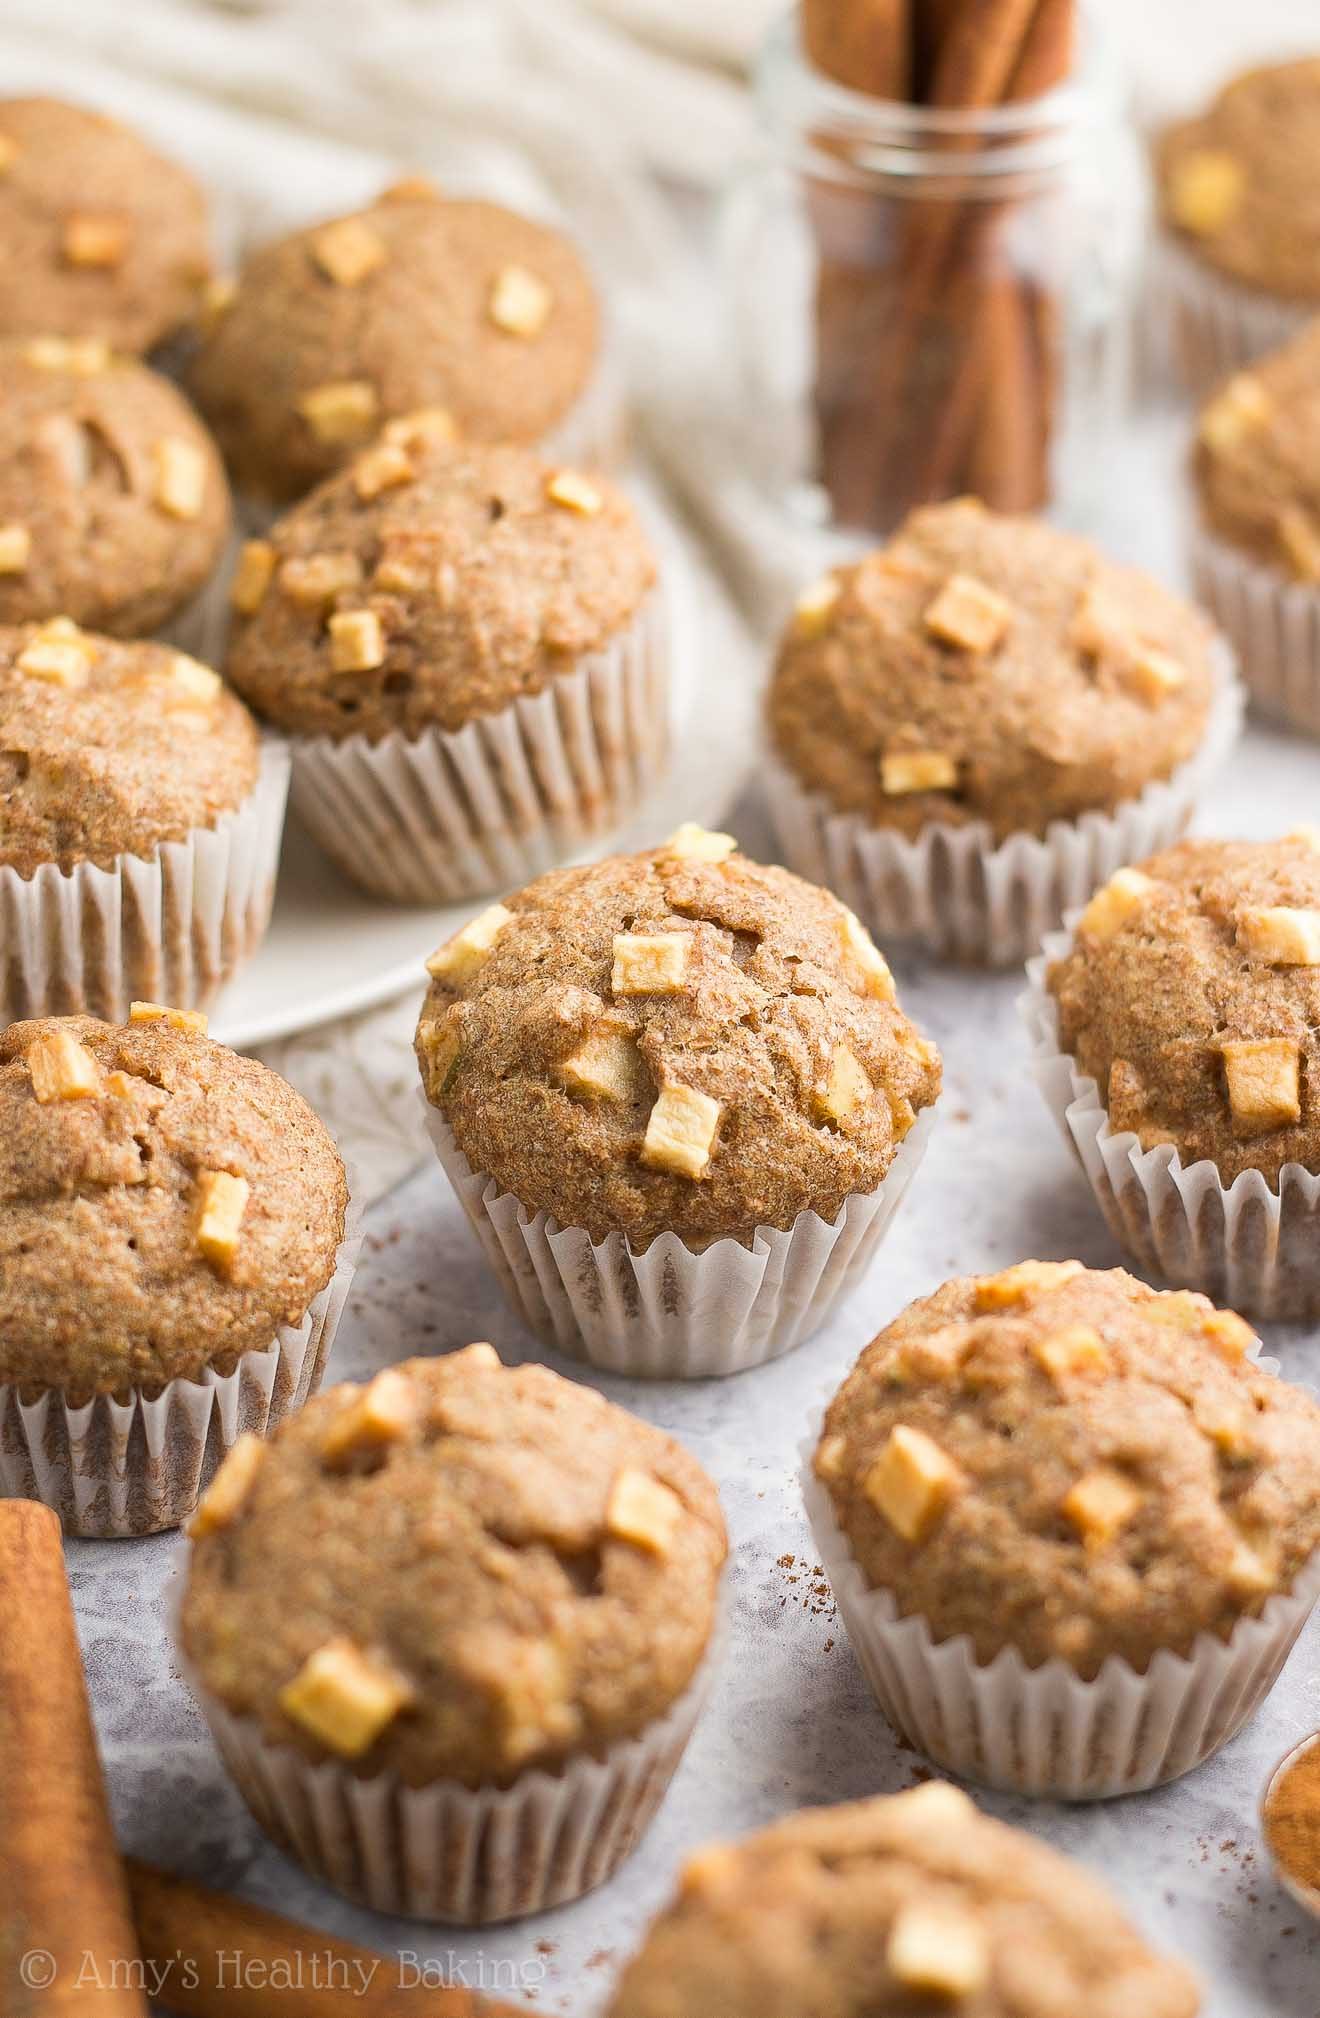 {HEALTHY!} Cinnamon Apple Mini Muffins -- only 32 calories! They taste like apple pie for breakfast! This easy recipe was an instant favorite in our family! (Totally kid-approved too!) #healthy #recipes #breakfast #muffins #cleaneating